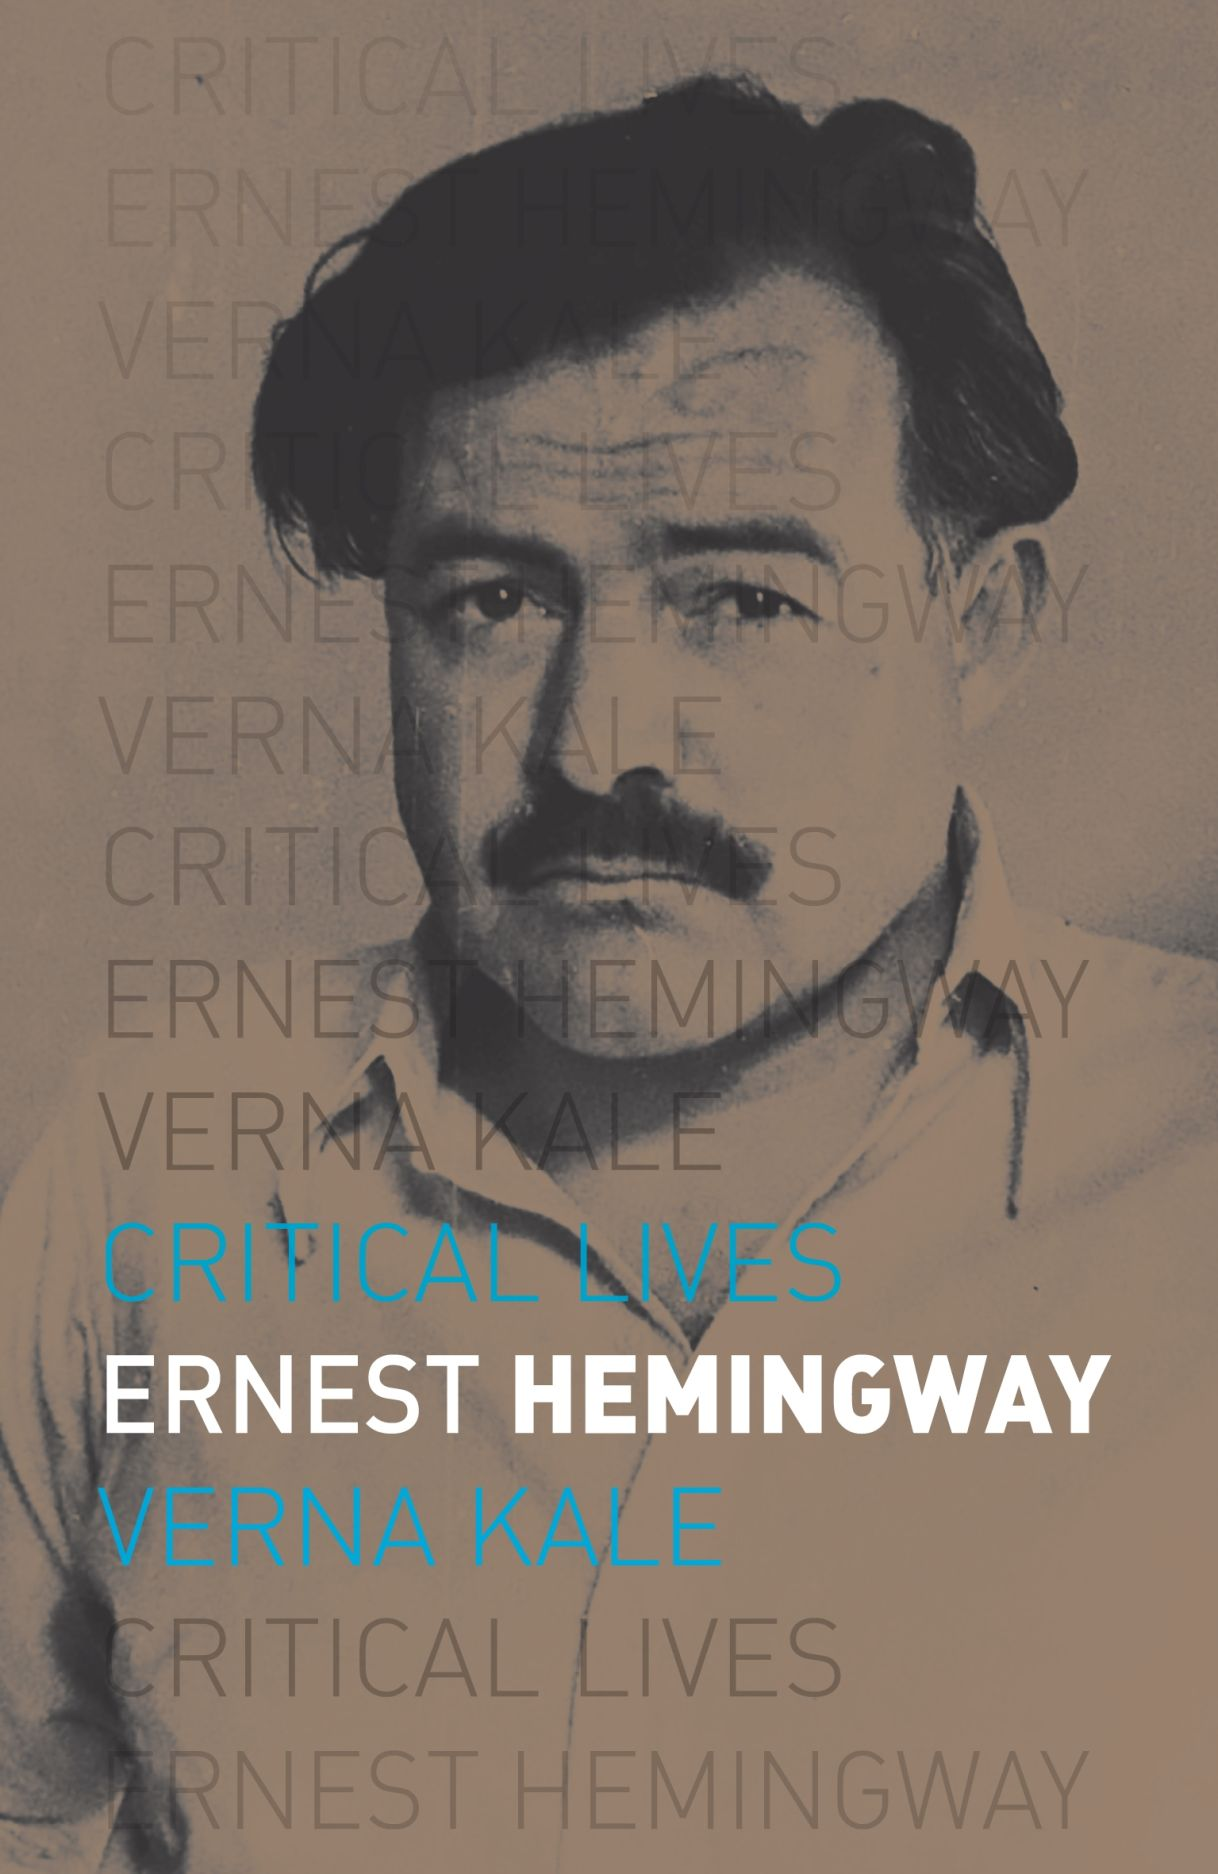 North American Moving >> Ernest Hemingway, Kale